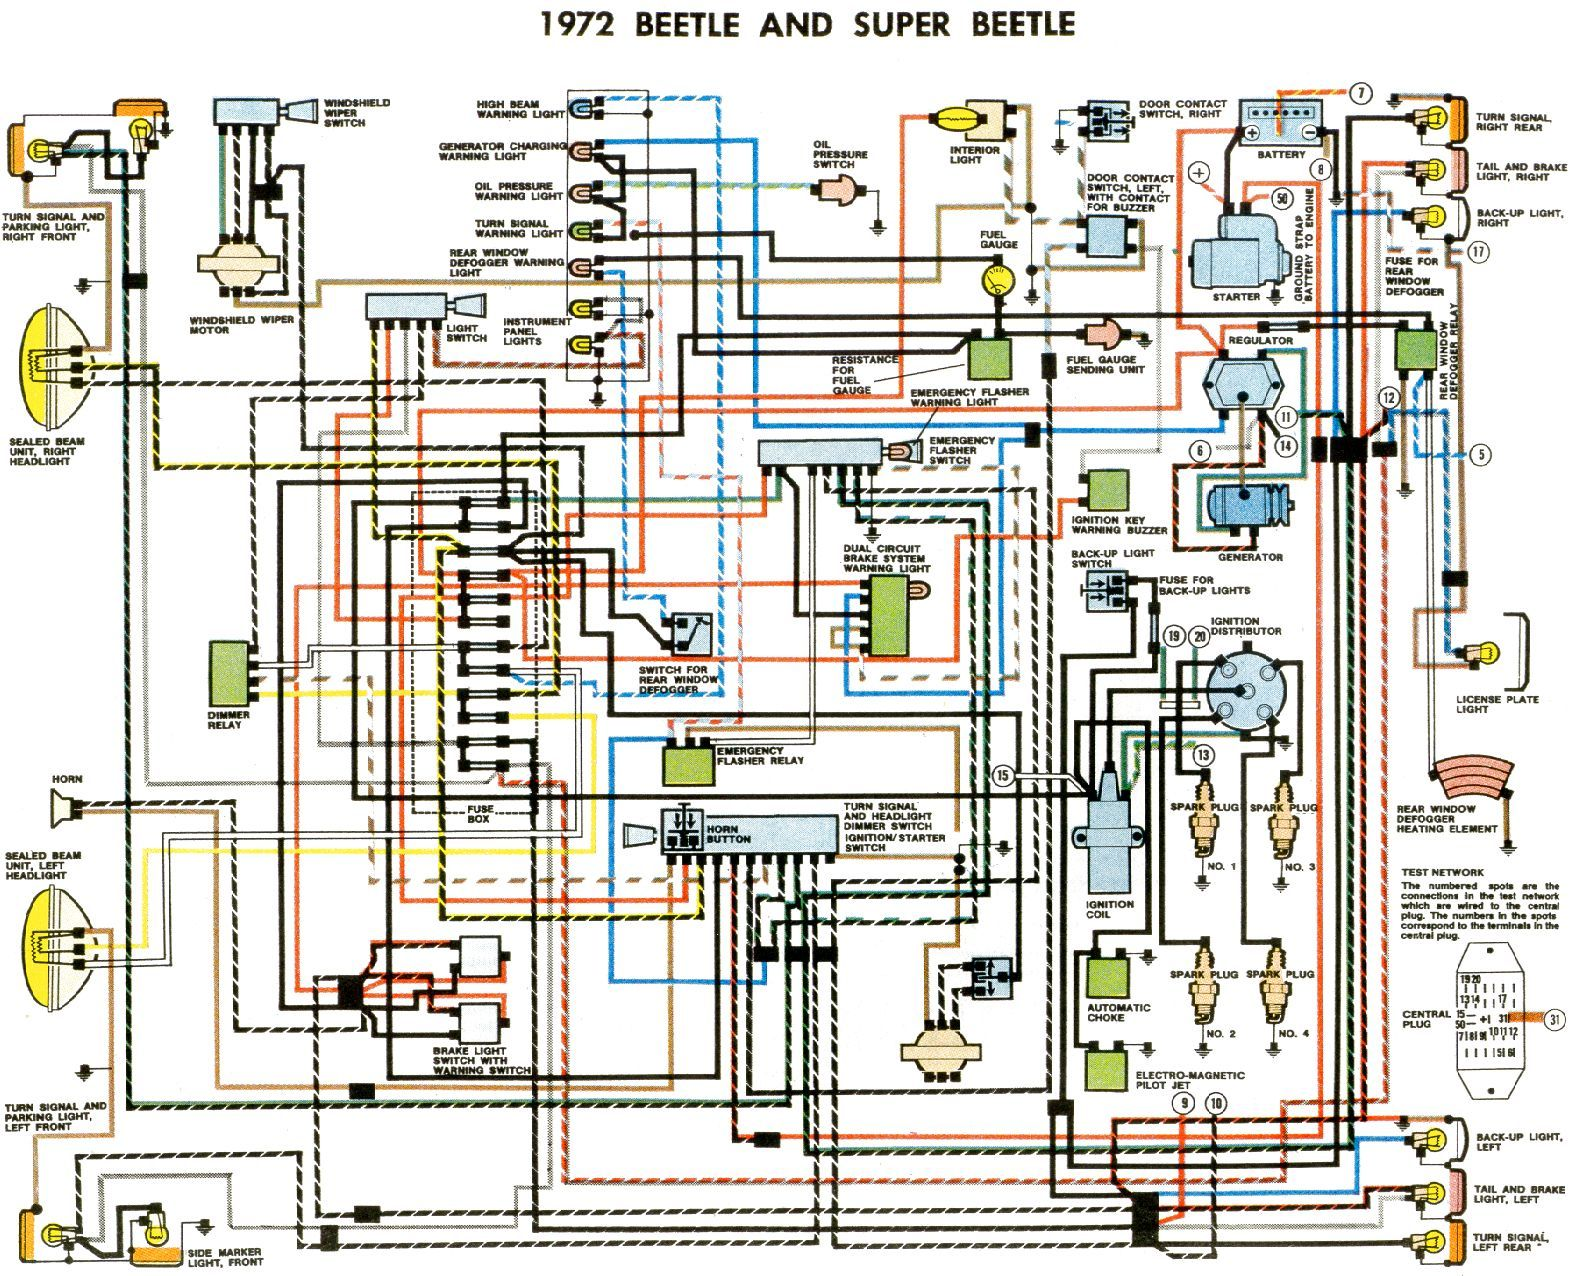 72 Wiring Diagram Jpg 1582 X 1276 46 Vw Super Beetle Diagram Design Volkswagen Car